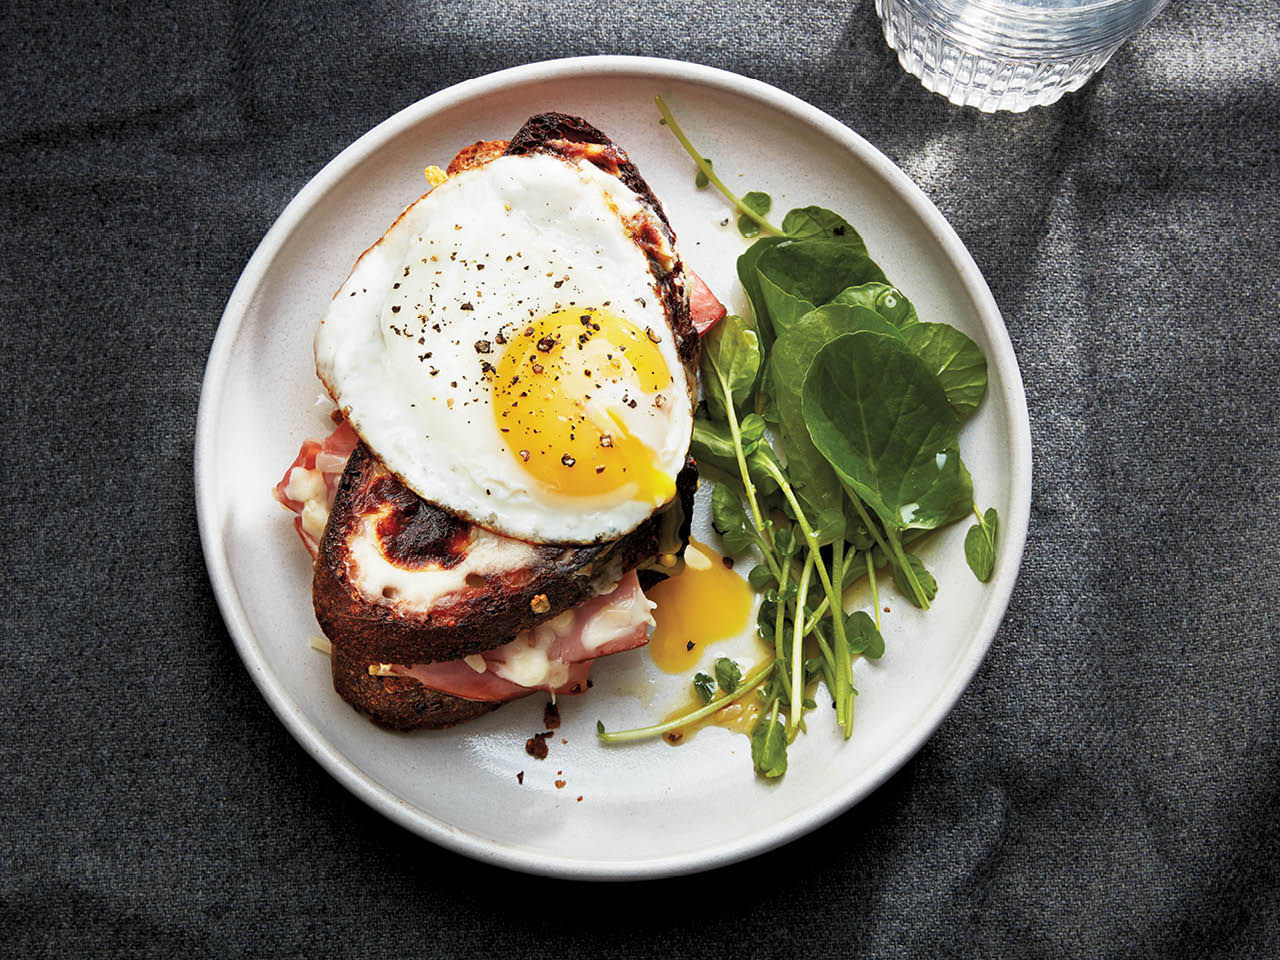 Grilled cheese croque madame